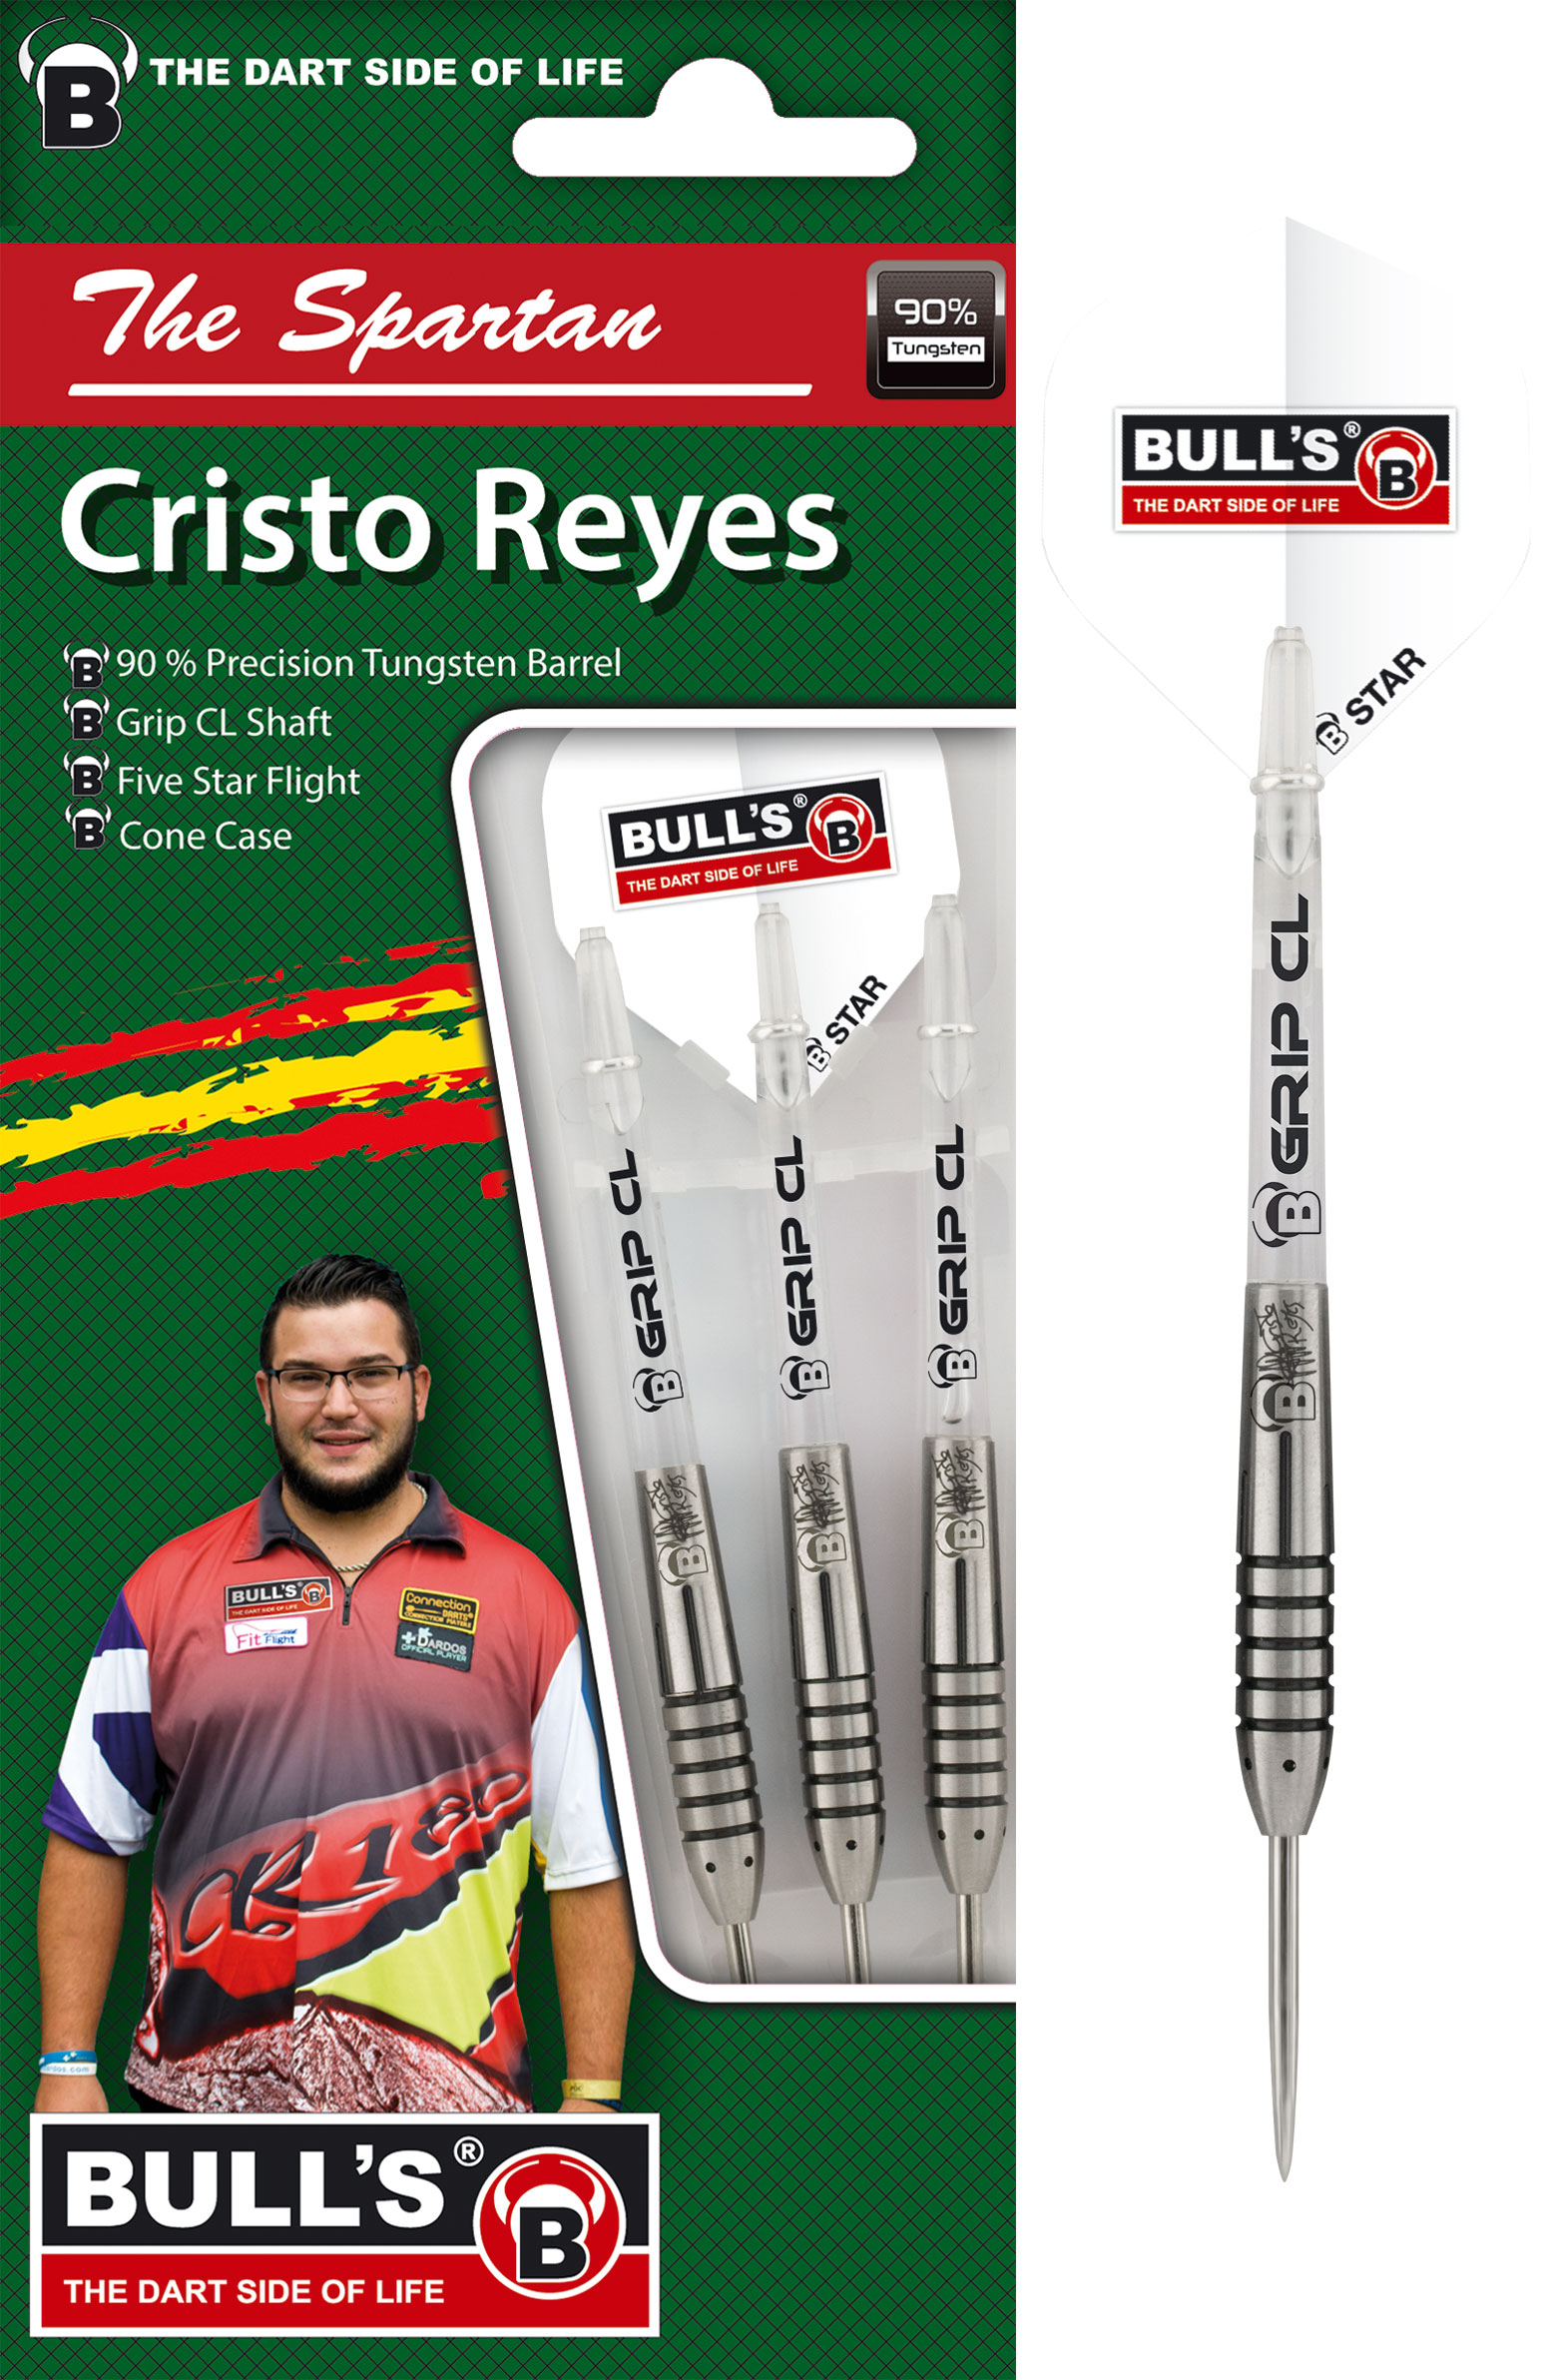 BULL'S Champions Christo The Spartan Reyes Steel Dart